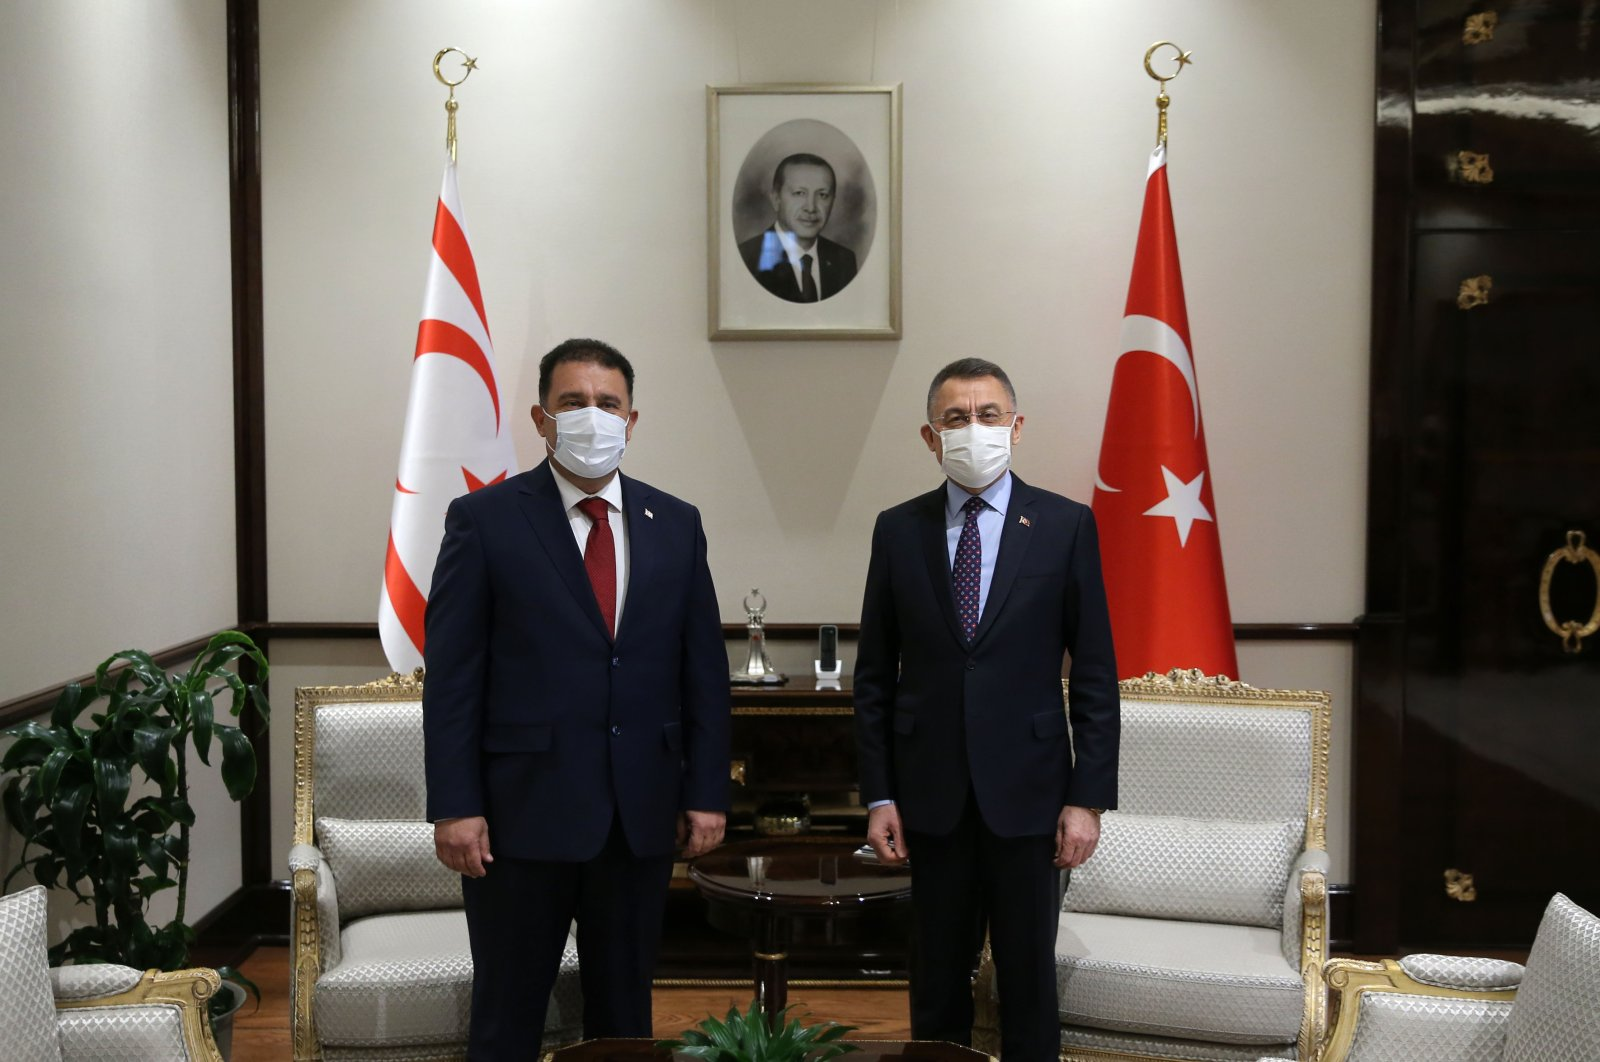 Turkish Vice President Fuat Oktay (R) and TRNC Prime Minister Ersan Saner at the Presidential Complex in Ankara, Turkey, Dec. 24, 2020. (AA Photo)